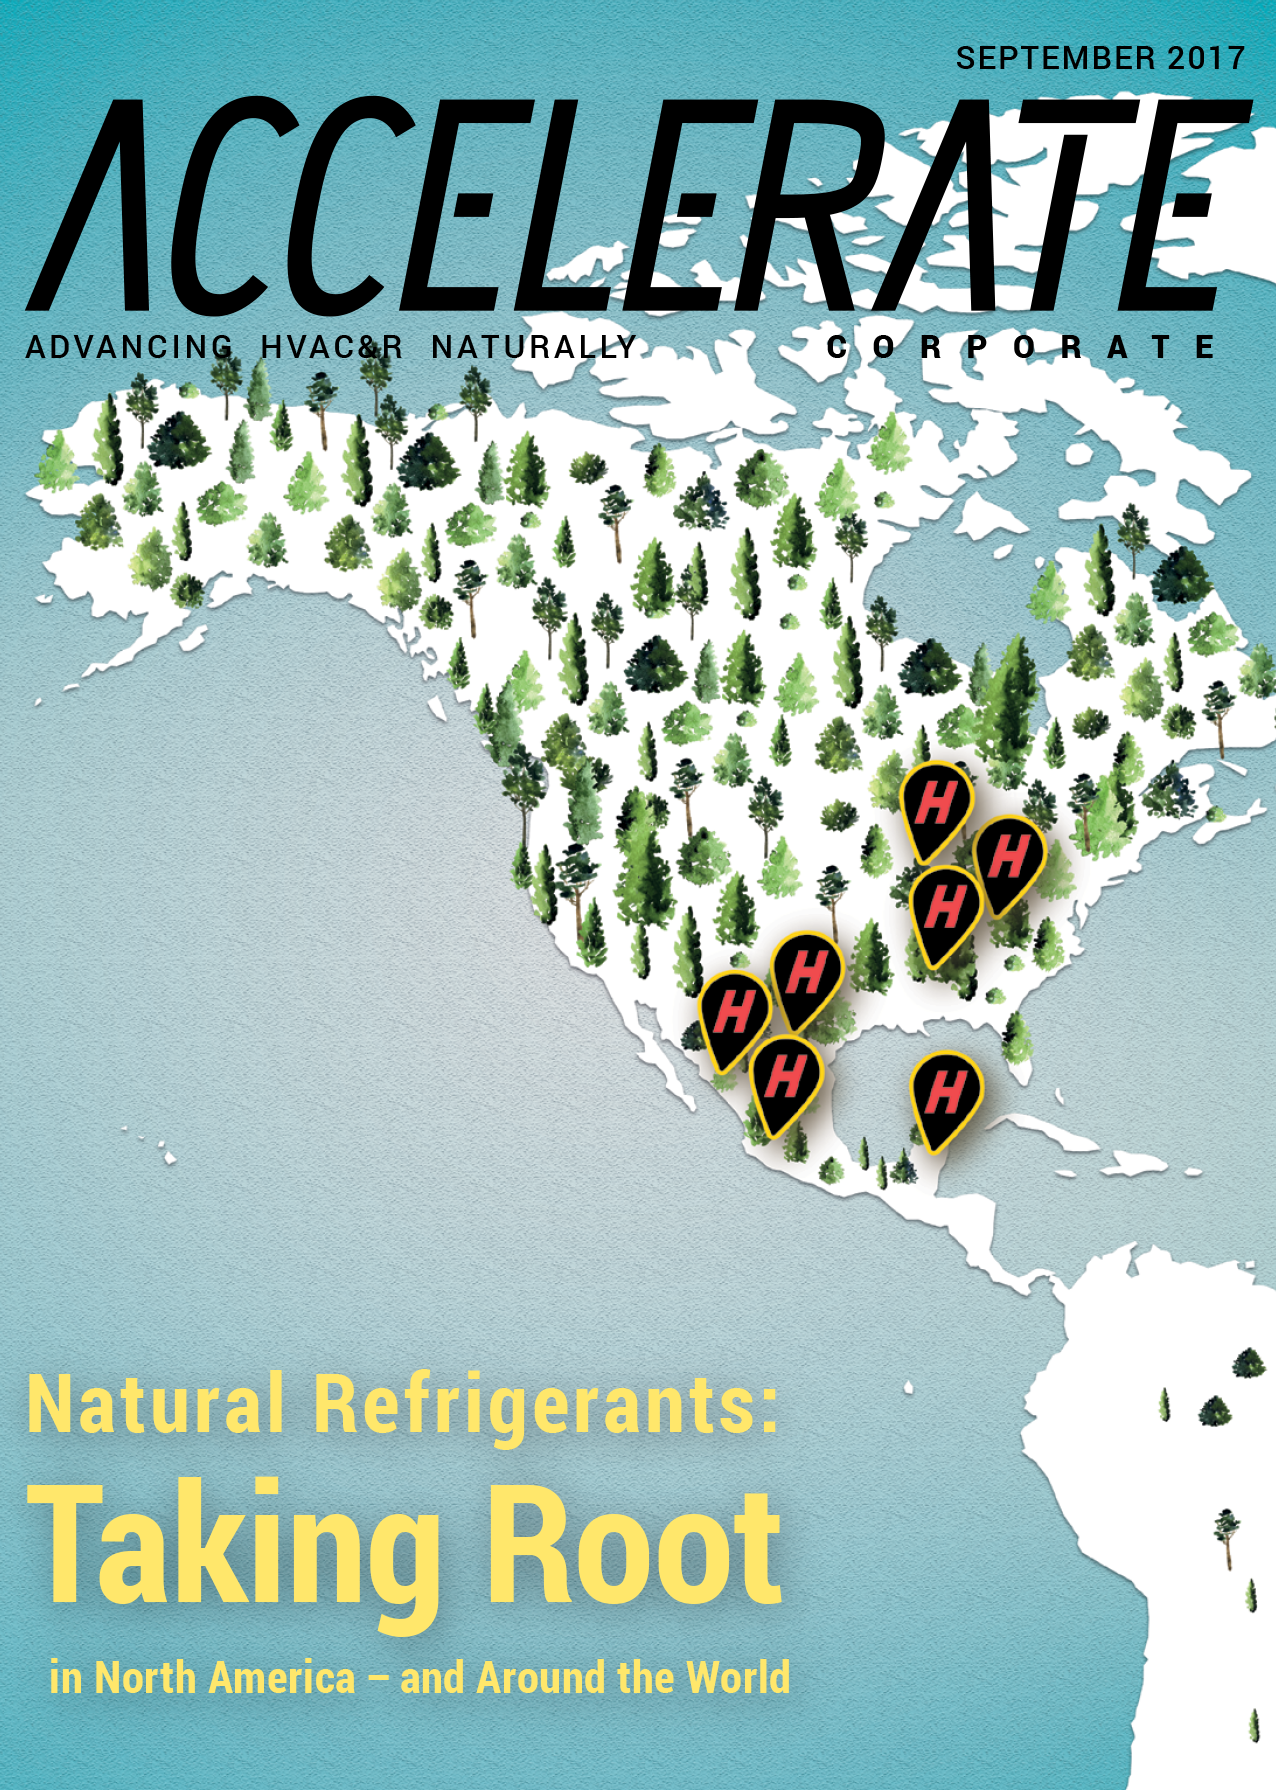 Natural Refrigerants: Taking Root in North America - and Around the World